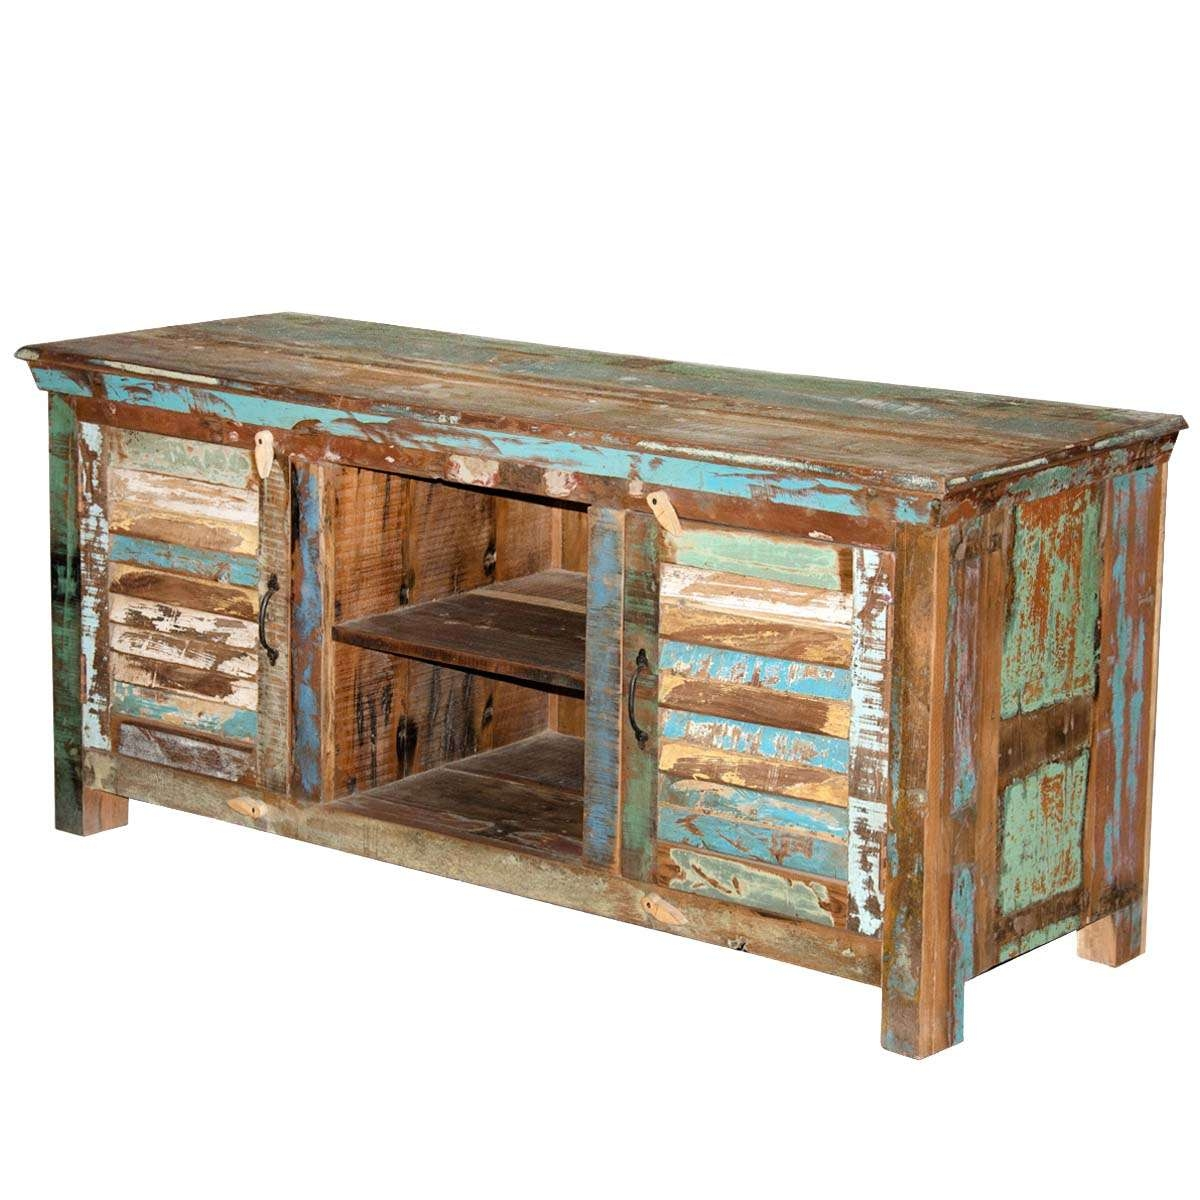 Rustic Shutter Doors Reclaimed Wood Tv Stand Media Console Throughout Rustic Wood Tv Cabinets (View 15 of 20)